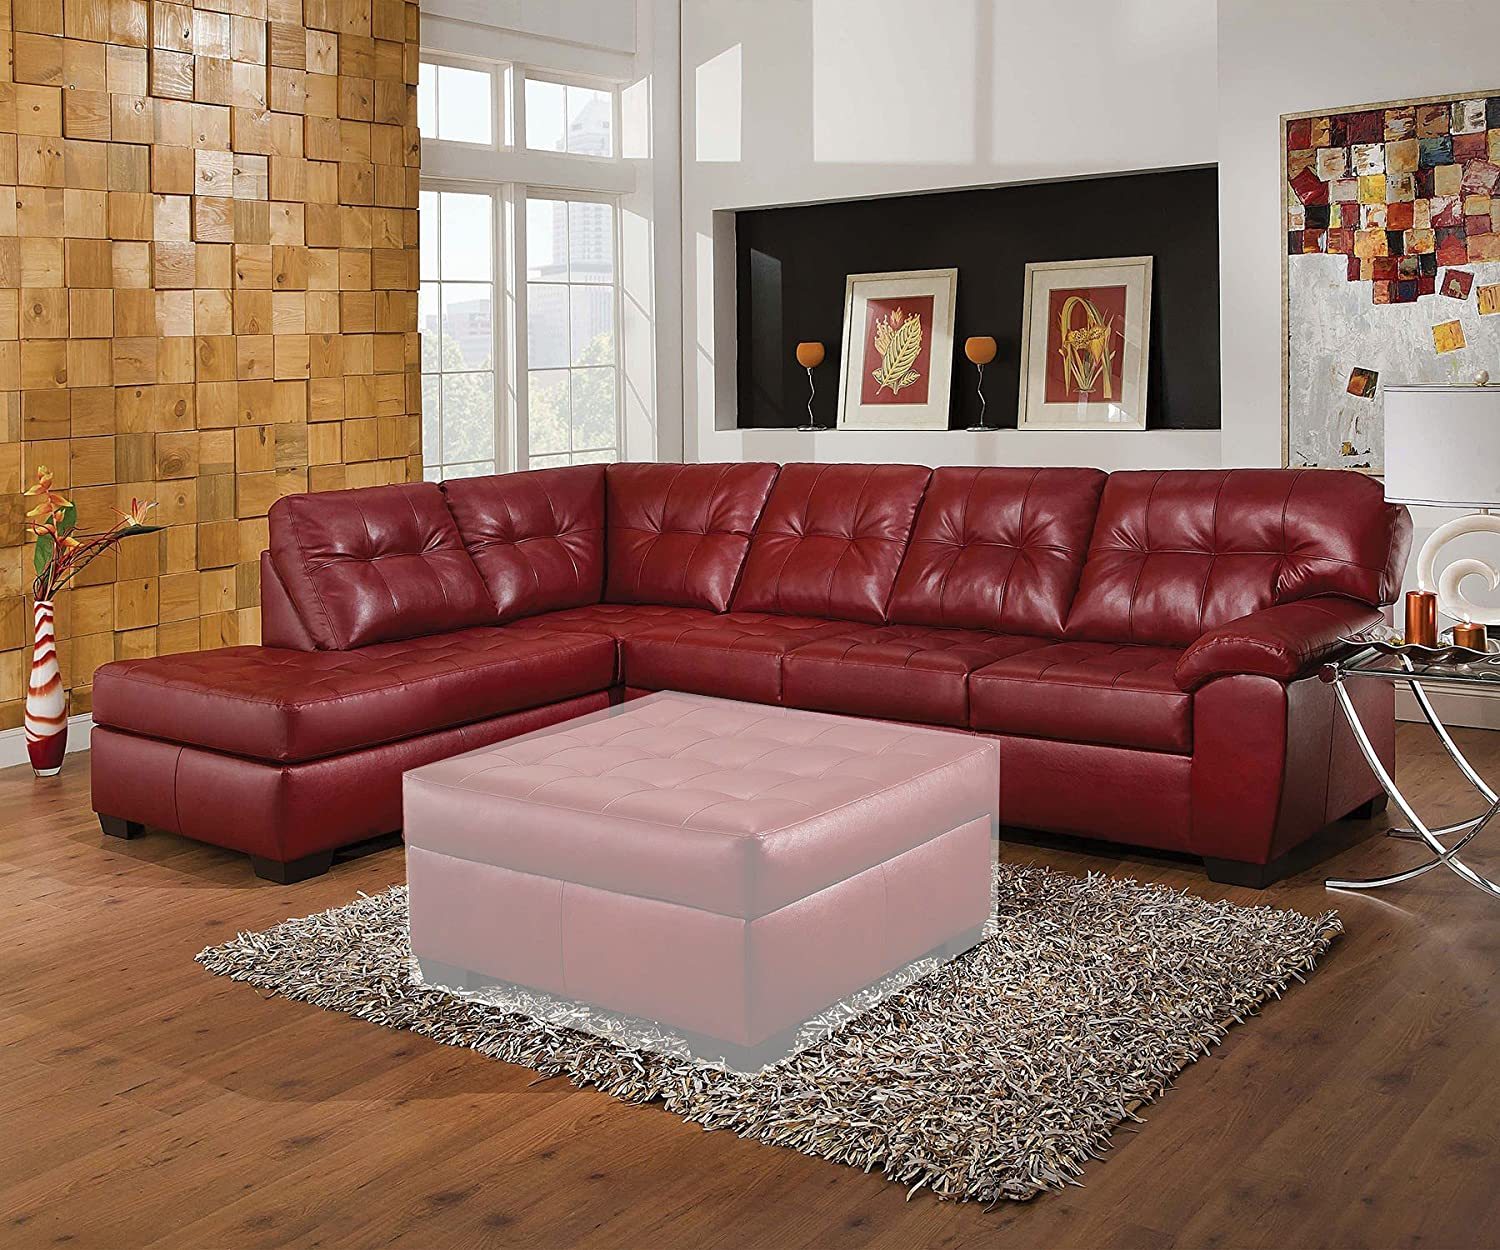 1PerfectChoice Shi Soho Cardinal Leather Sectional Sofa Left Chaise